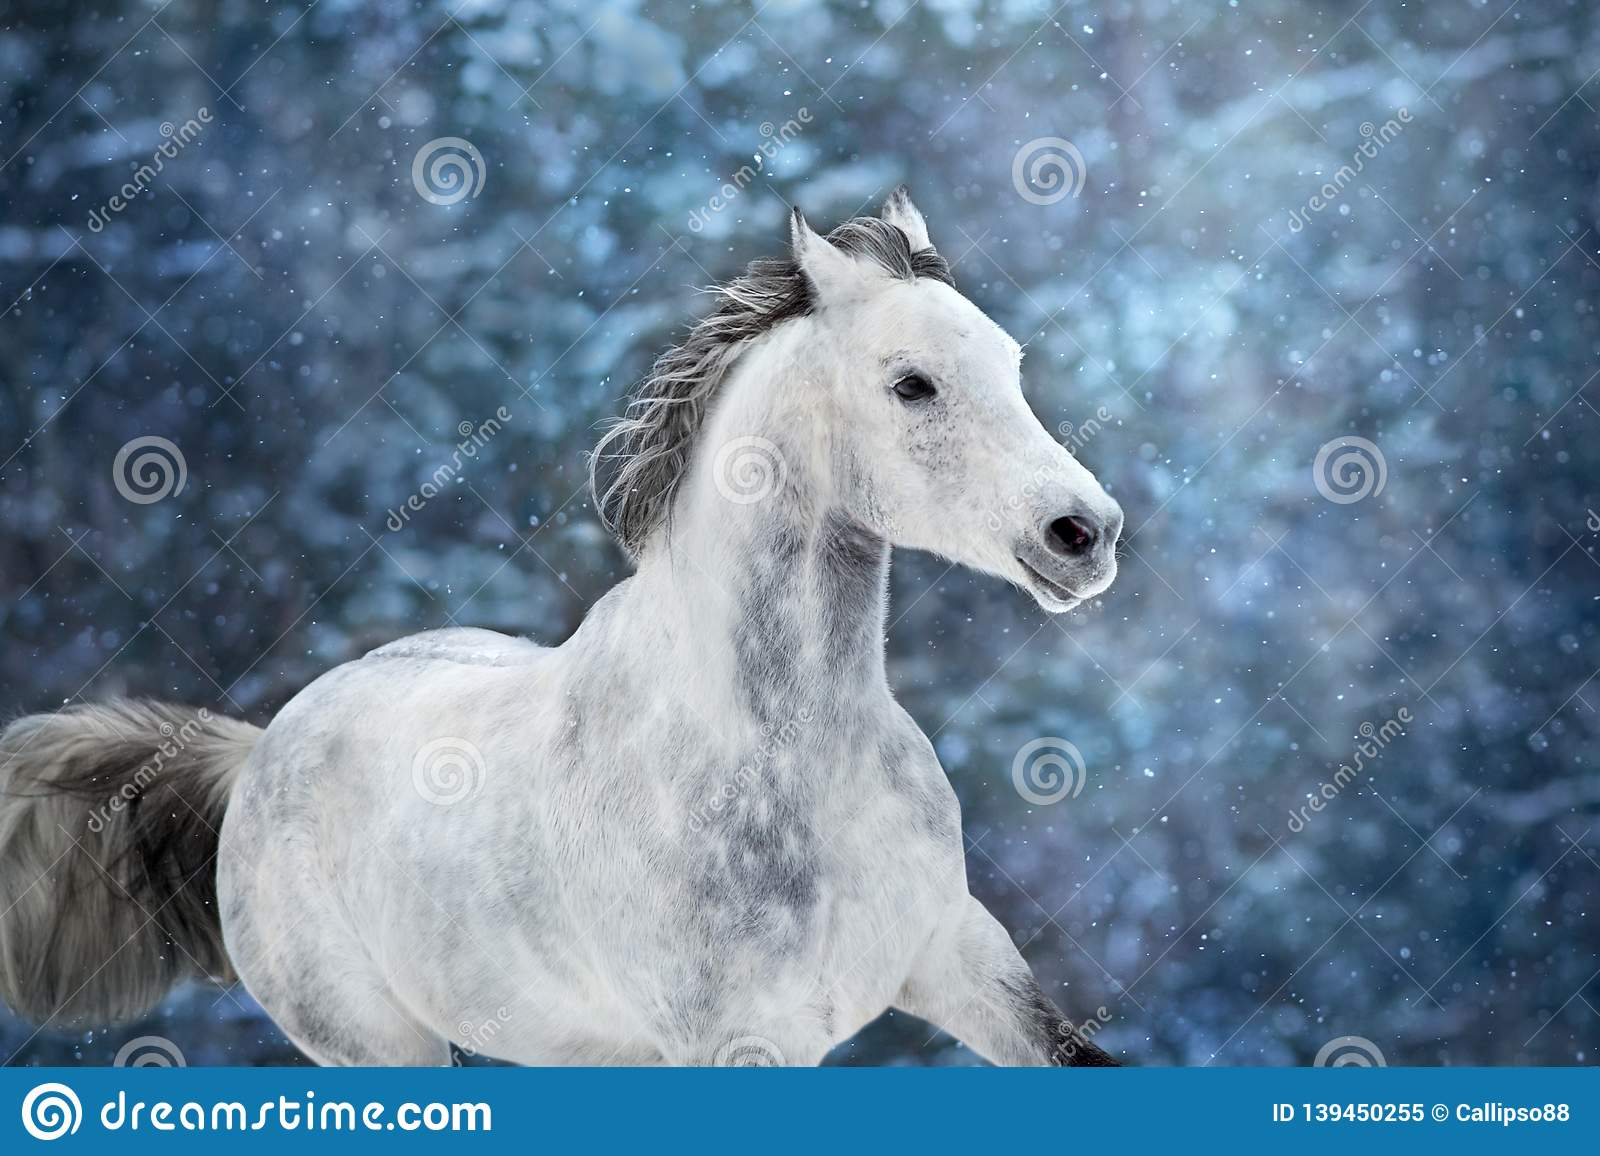 White Arabian Horse Portrait Stock Image Image Of Color Andalusian 139450255